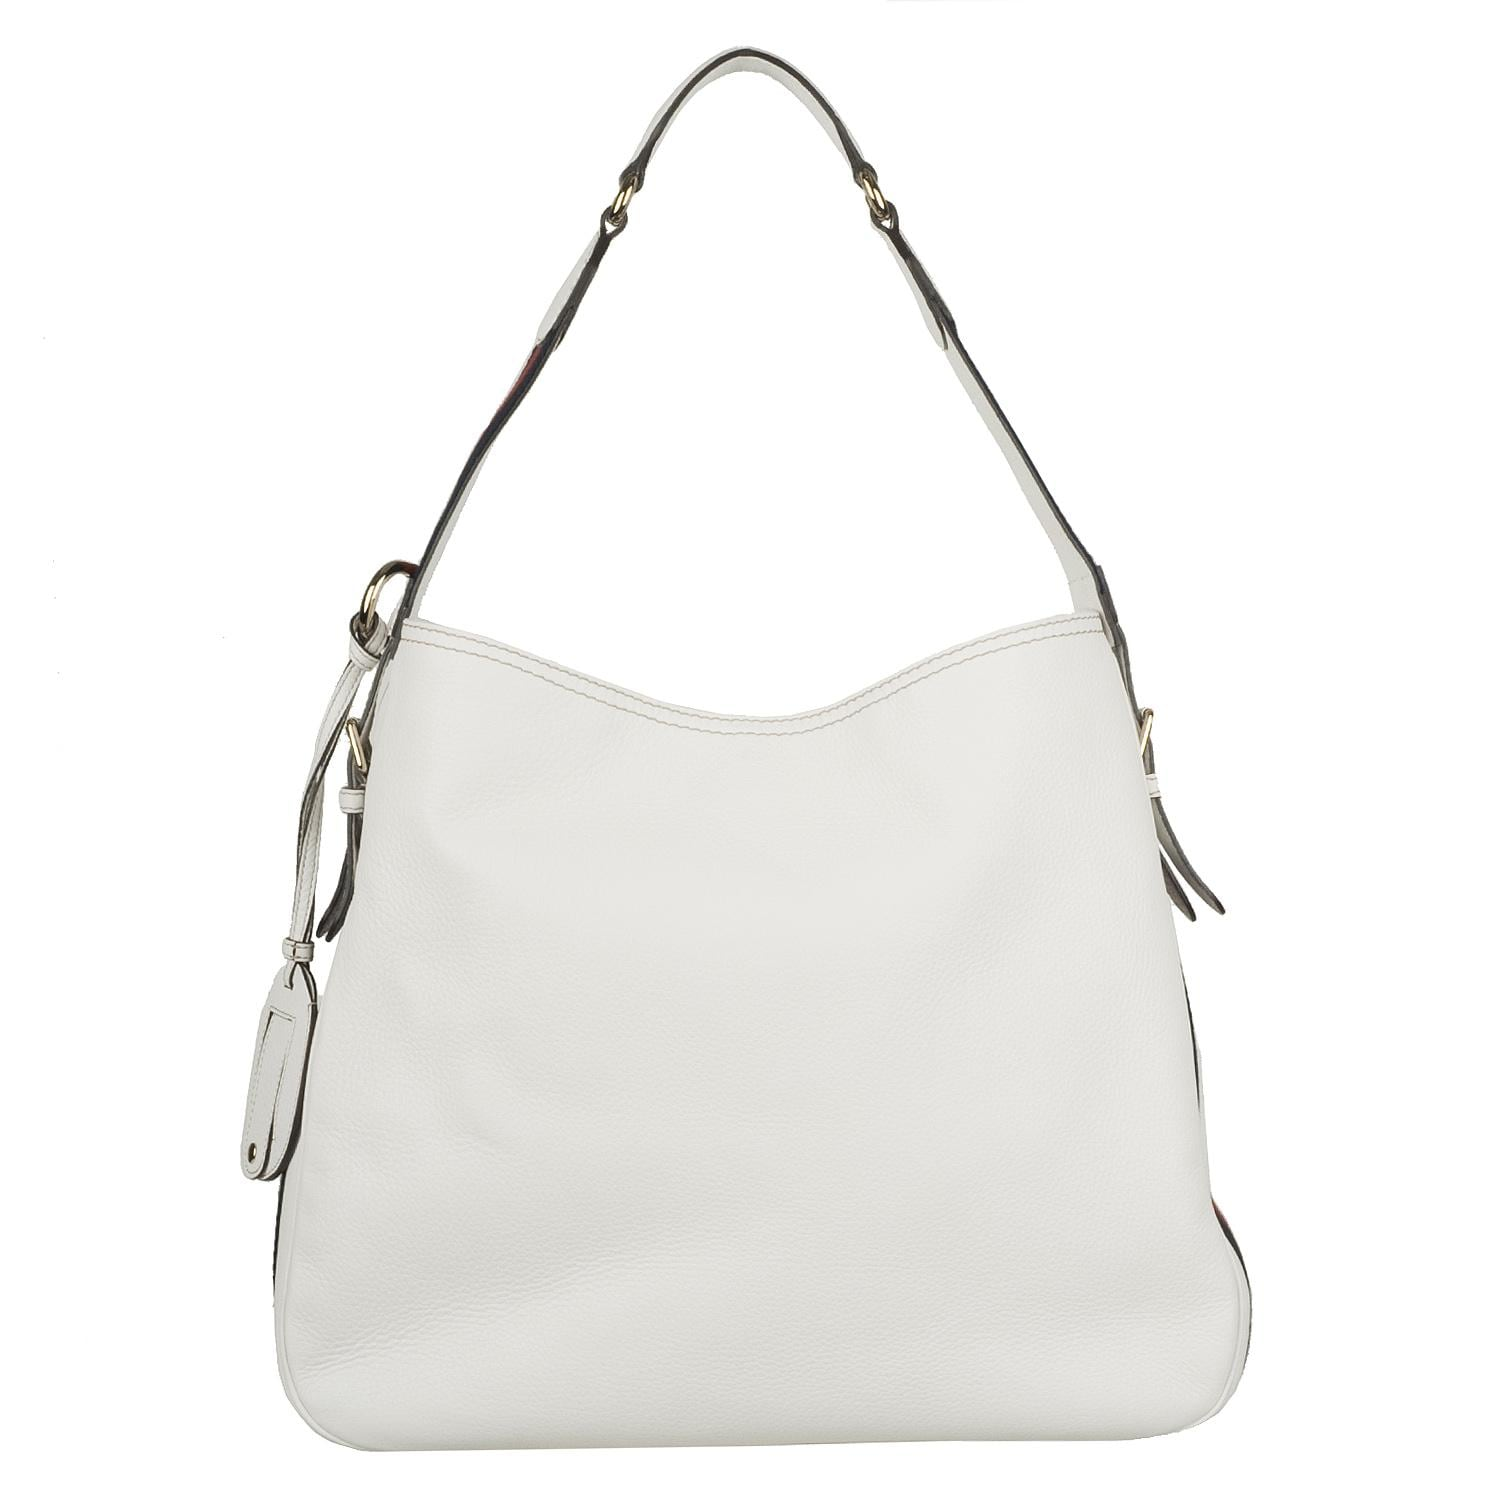 Gucci 'Heritage' Medium White Leather Hobo Bag - Free Shipping ...